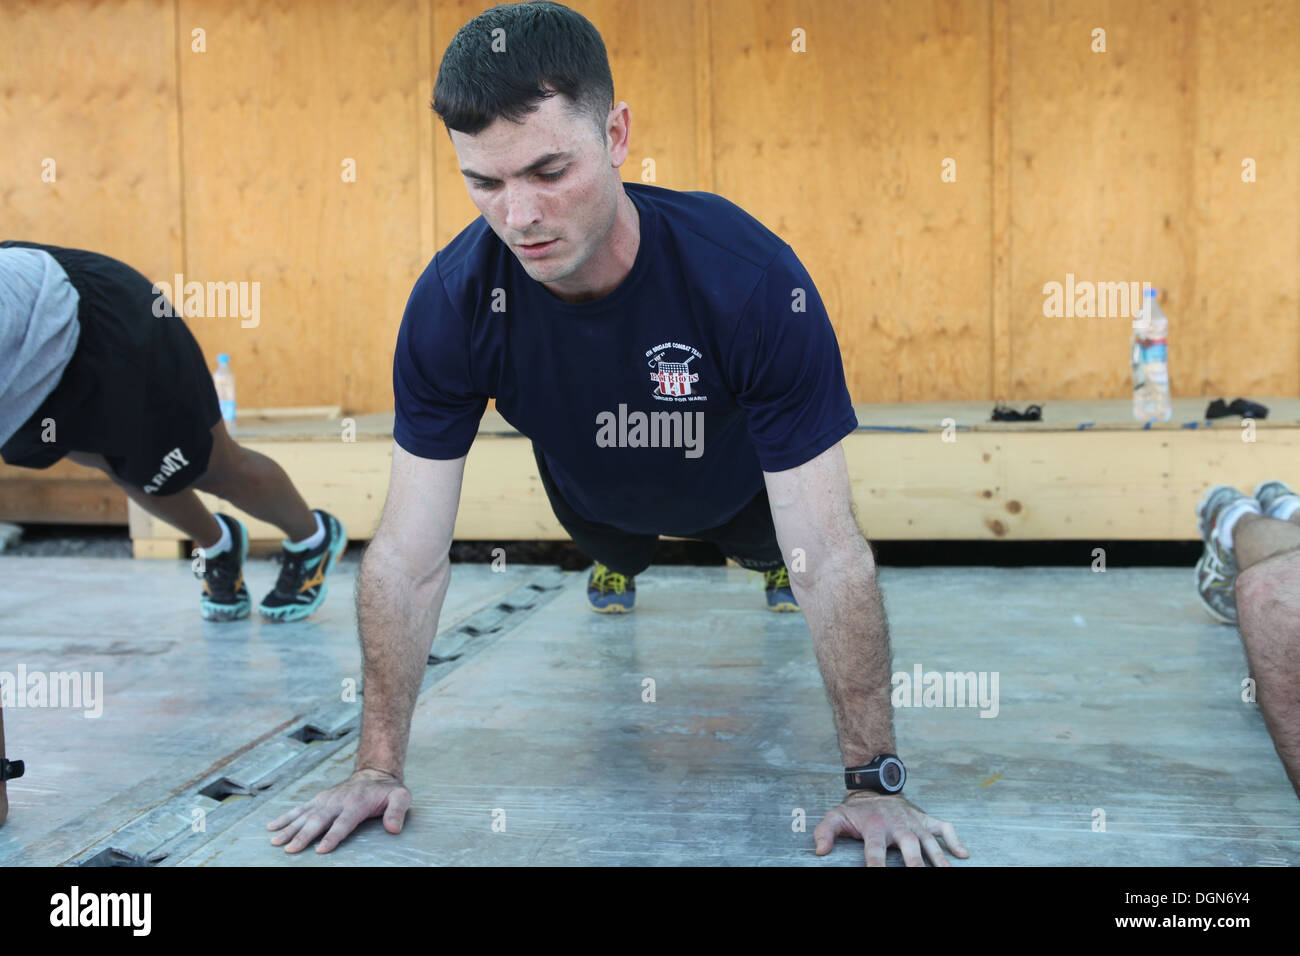 U.S. Army Capt. Kyle Greer, brigade planner, 4th Brigade Combat Team, 10th Mountain Division, does metronome push-ups as part of the Mountain Athlete Warrior physical assessment at Forward Operating Base Gamberi, Laghman province, Afghanistan, Oct. 15, 20 - Stock Image